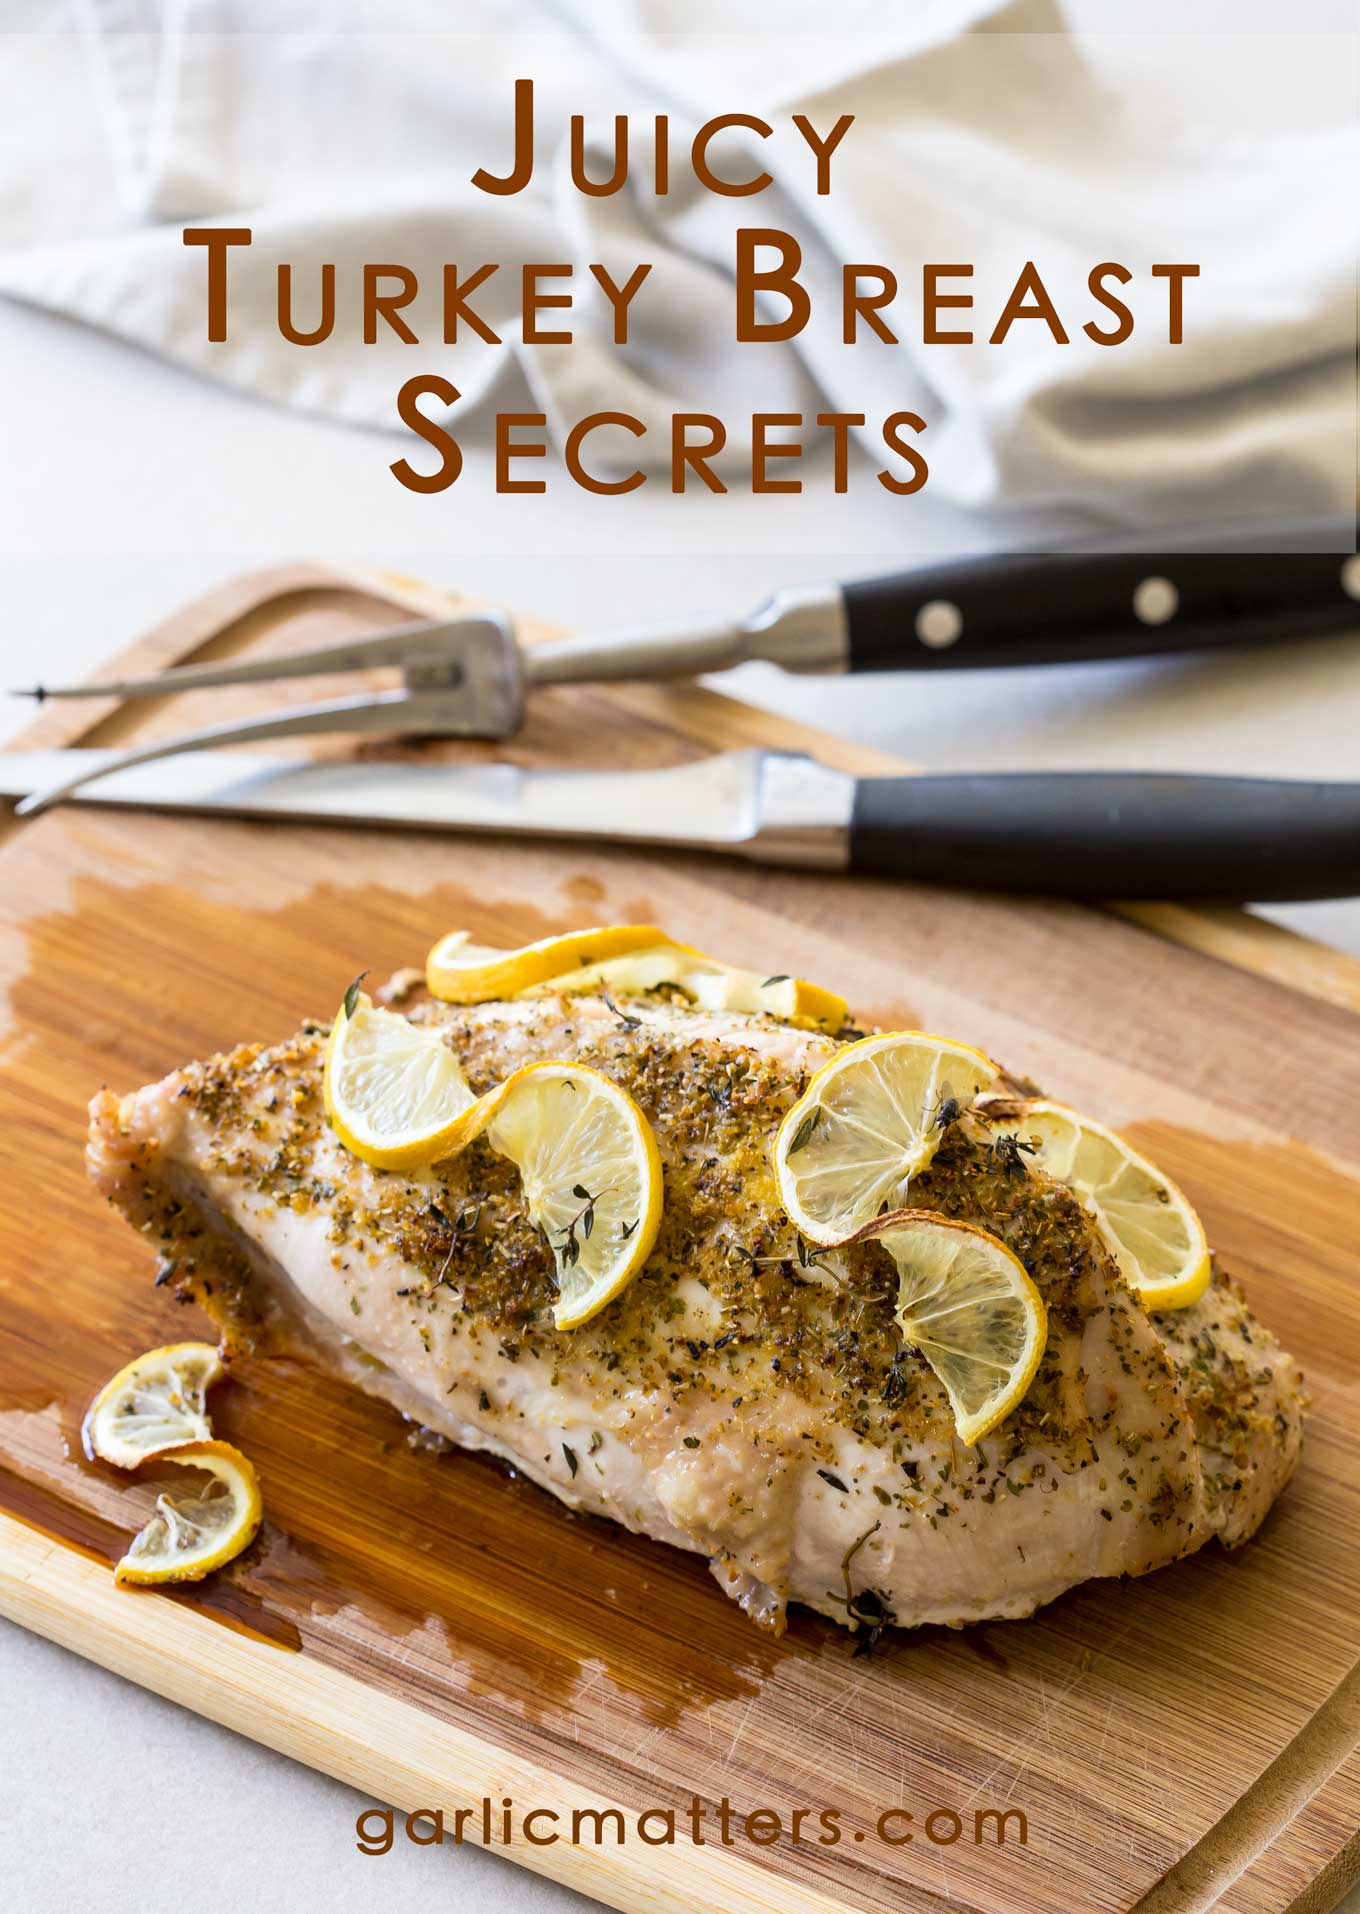 Come on in to discover my Juicy Turkey Breast secrets! This is an easy, straight forward 60 min in total recipe for an oven roasted, bone in (2 ½ lb) perfect turkey breast. You'll want to bake it time and time again, even outside the festive season to have for dinner or use in sandwiches or salads.